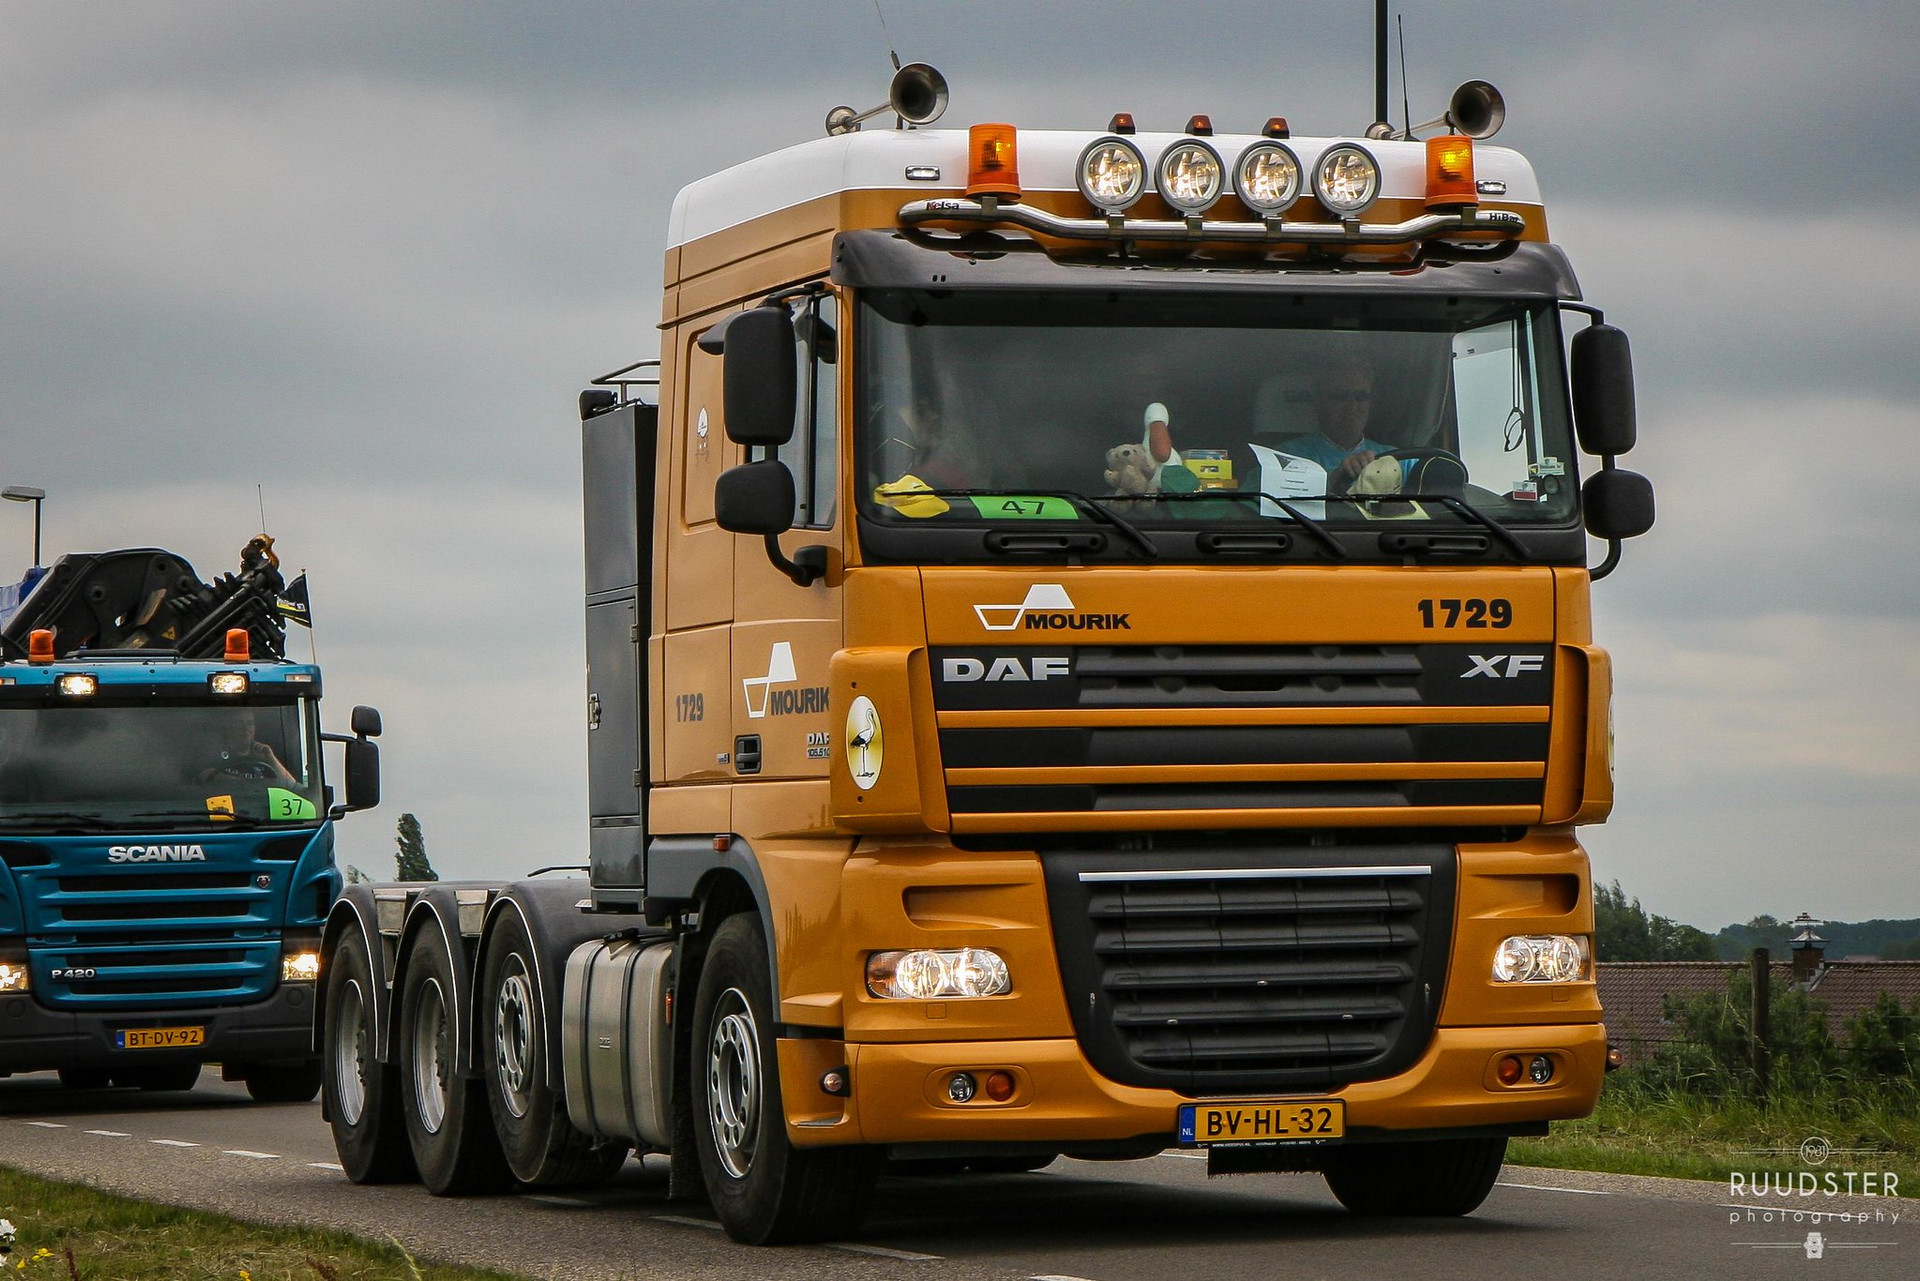 BV-HL-32 | Build: 2008 - DAF XF105.510